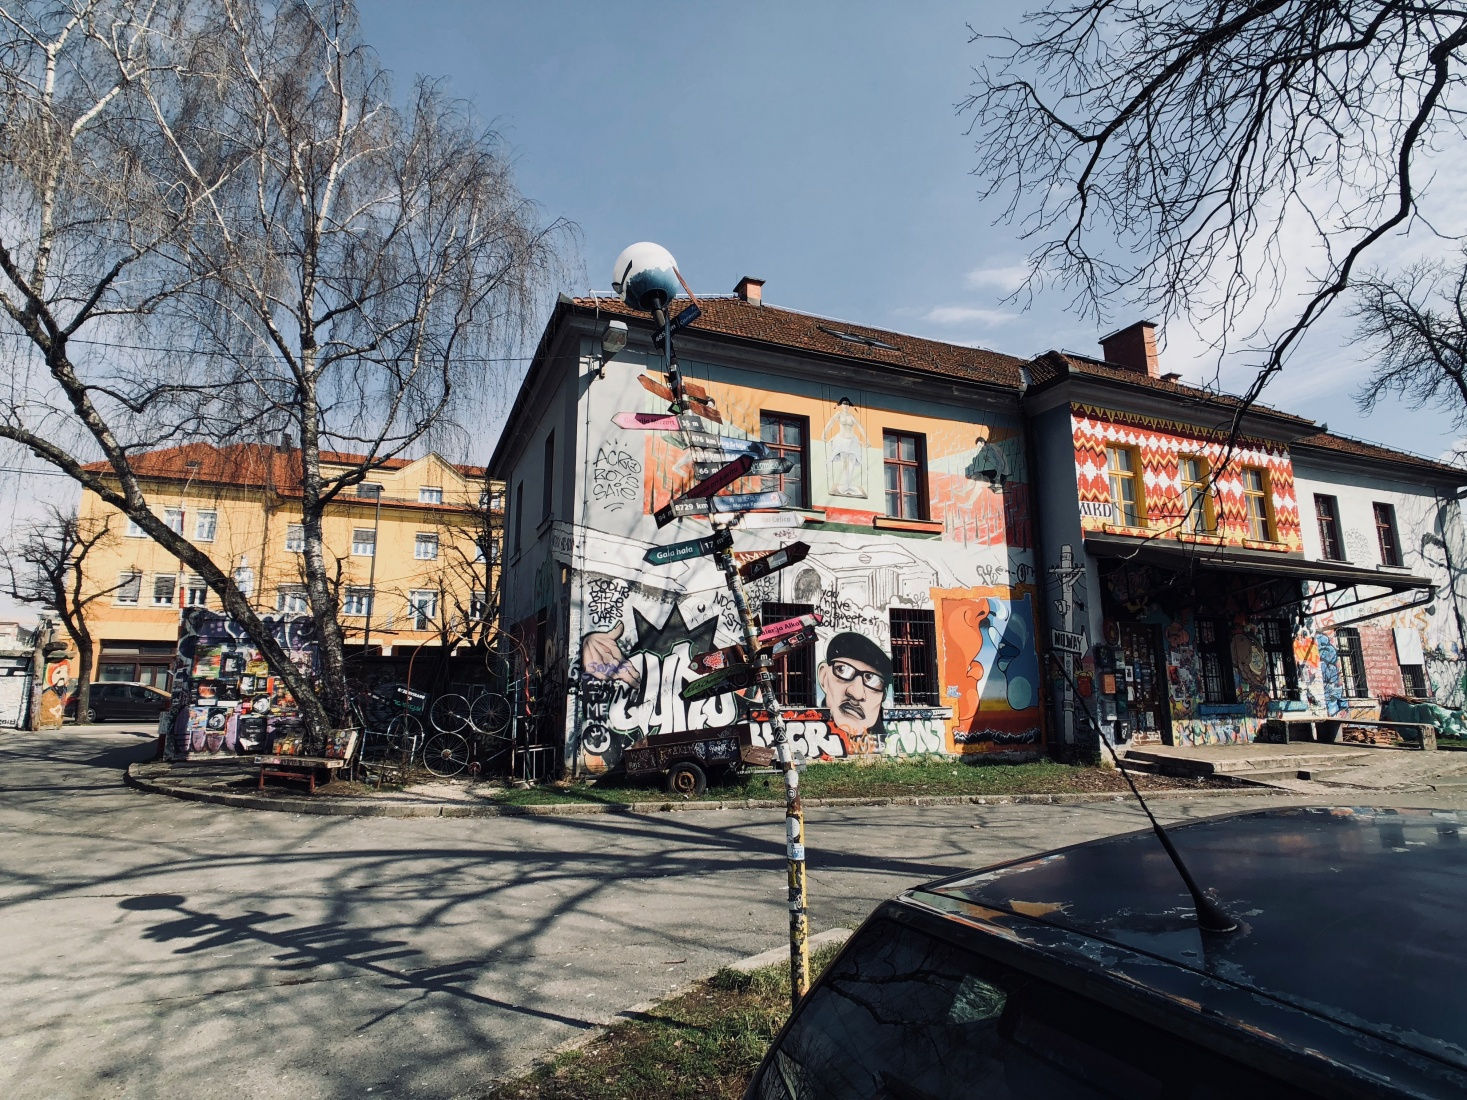 Street-art sign pointing students and visitors toward different clubs around Metelkova Mesto, a graffiti-covered squat in an abandoned military barracks in Ljubljana, Slovenia.